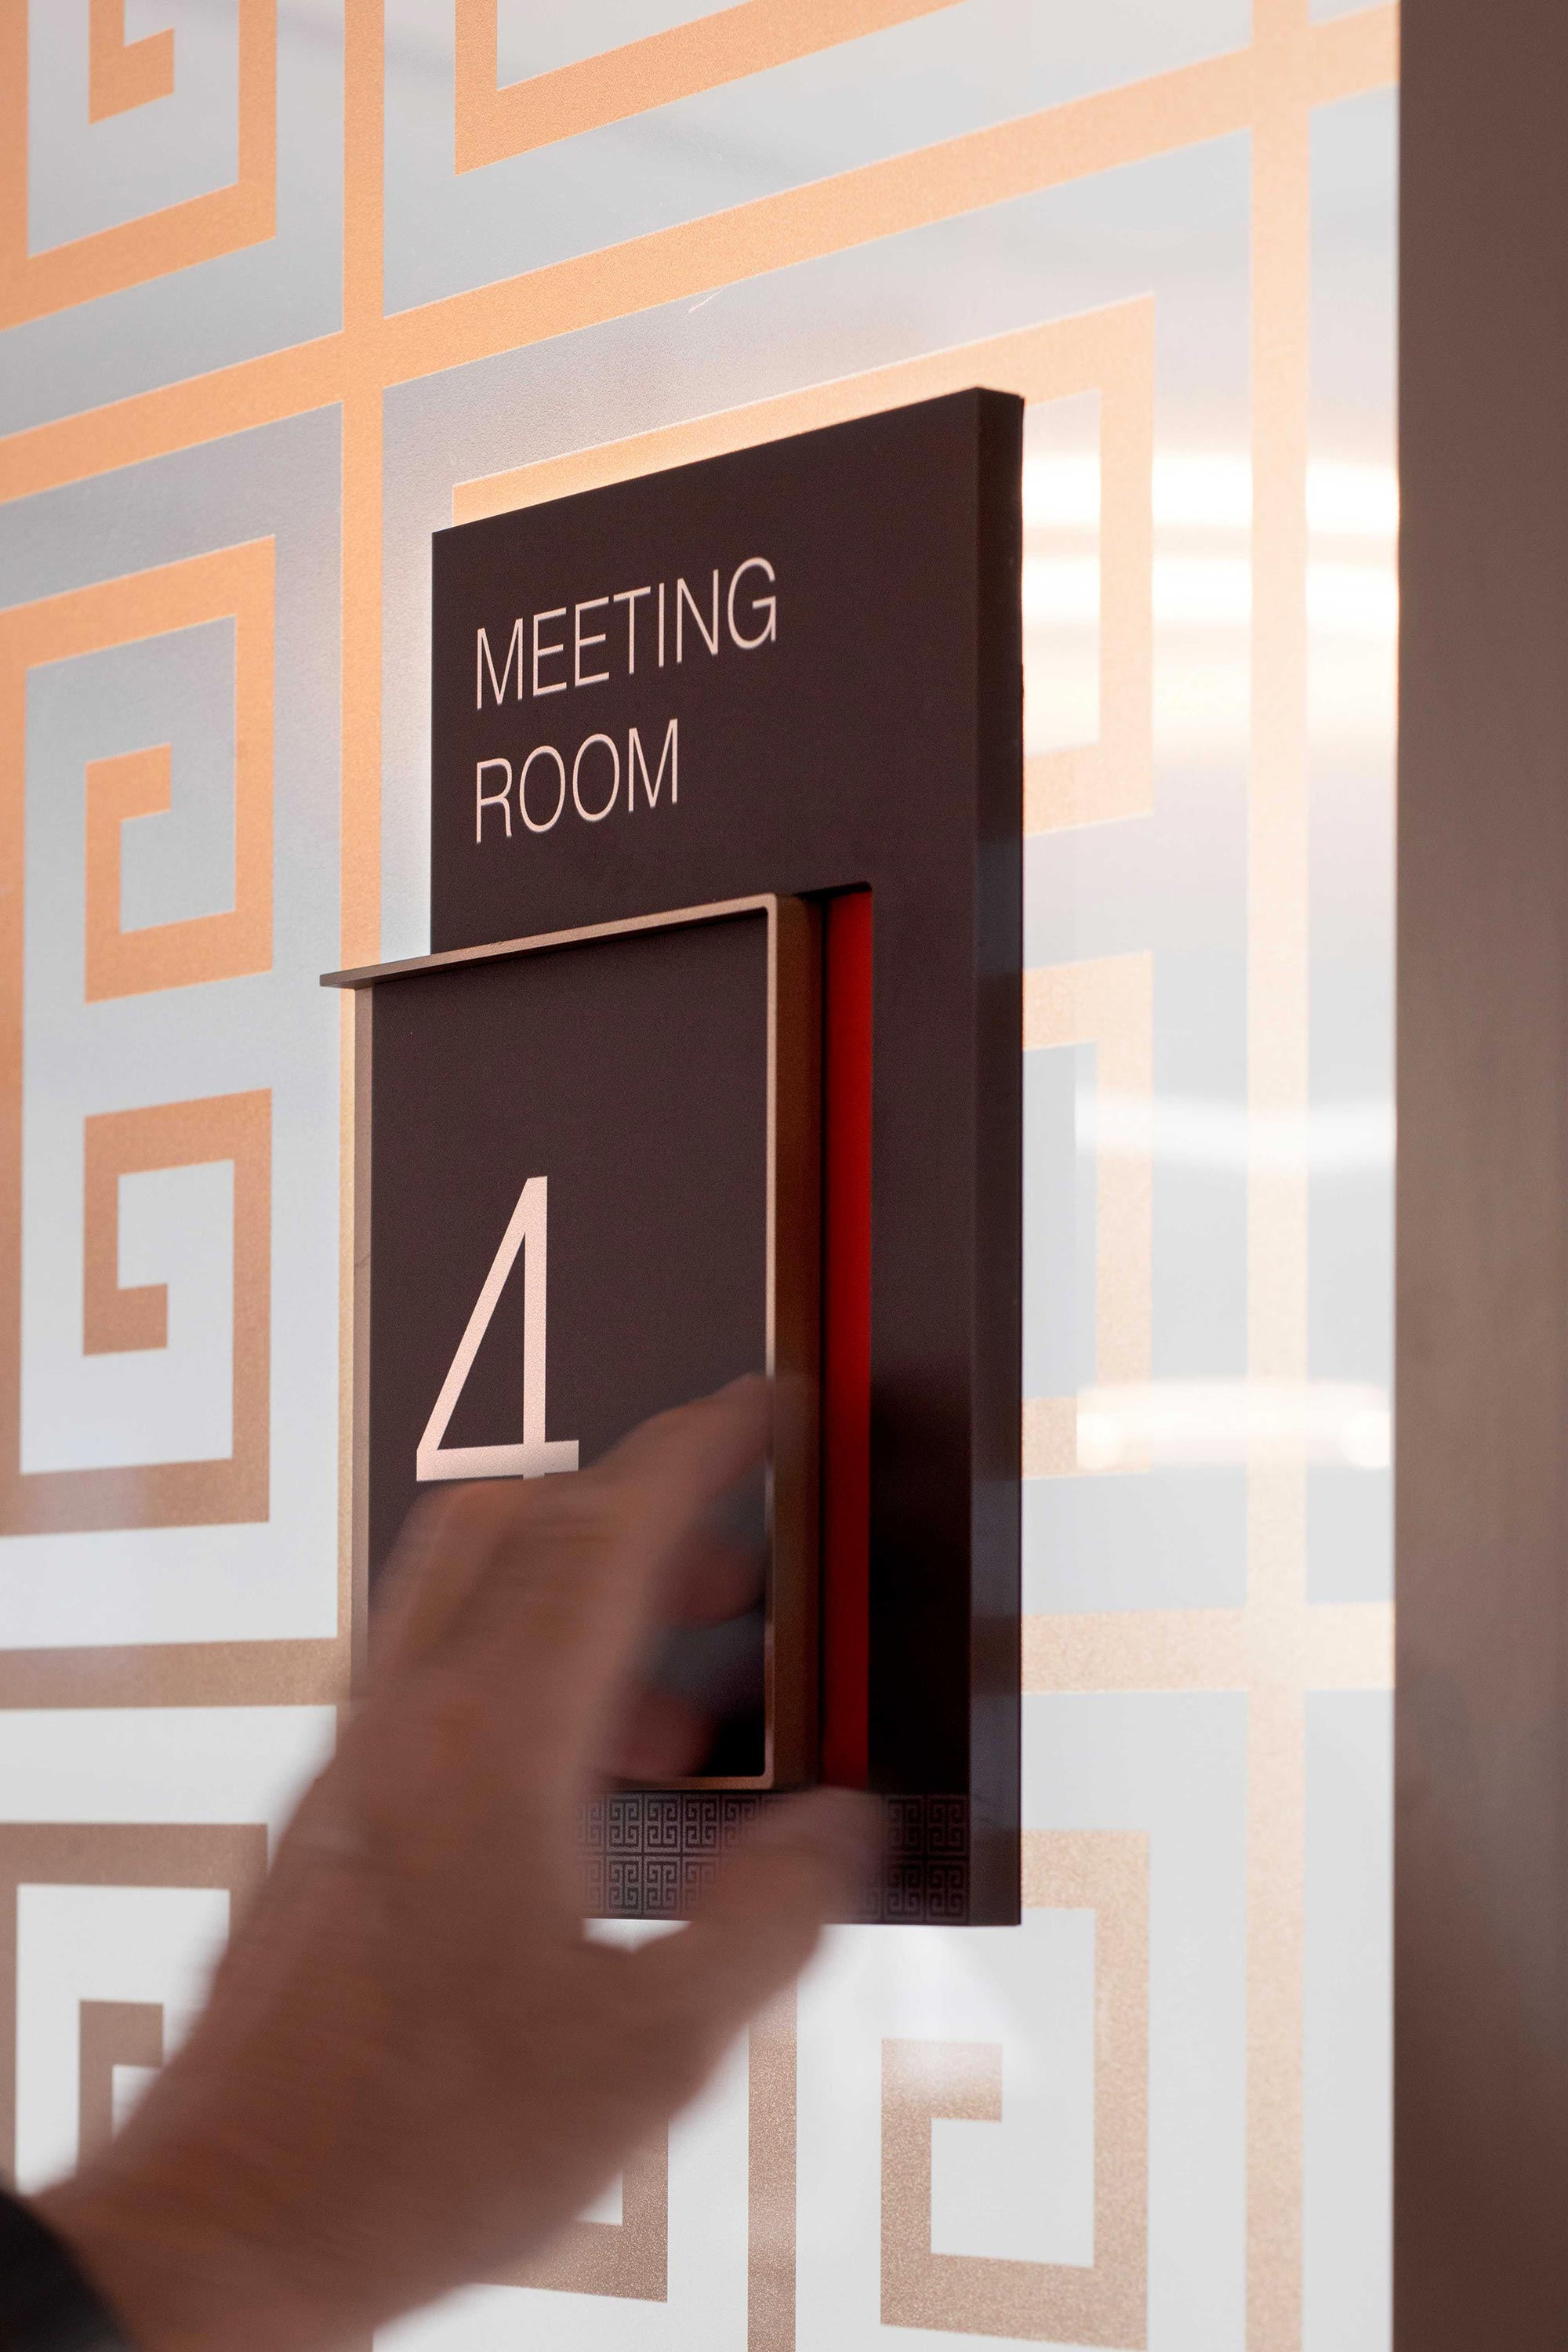 Meeting room vacancy sign